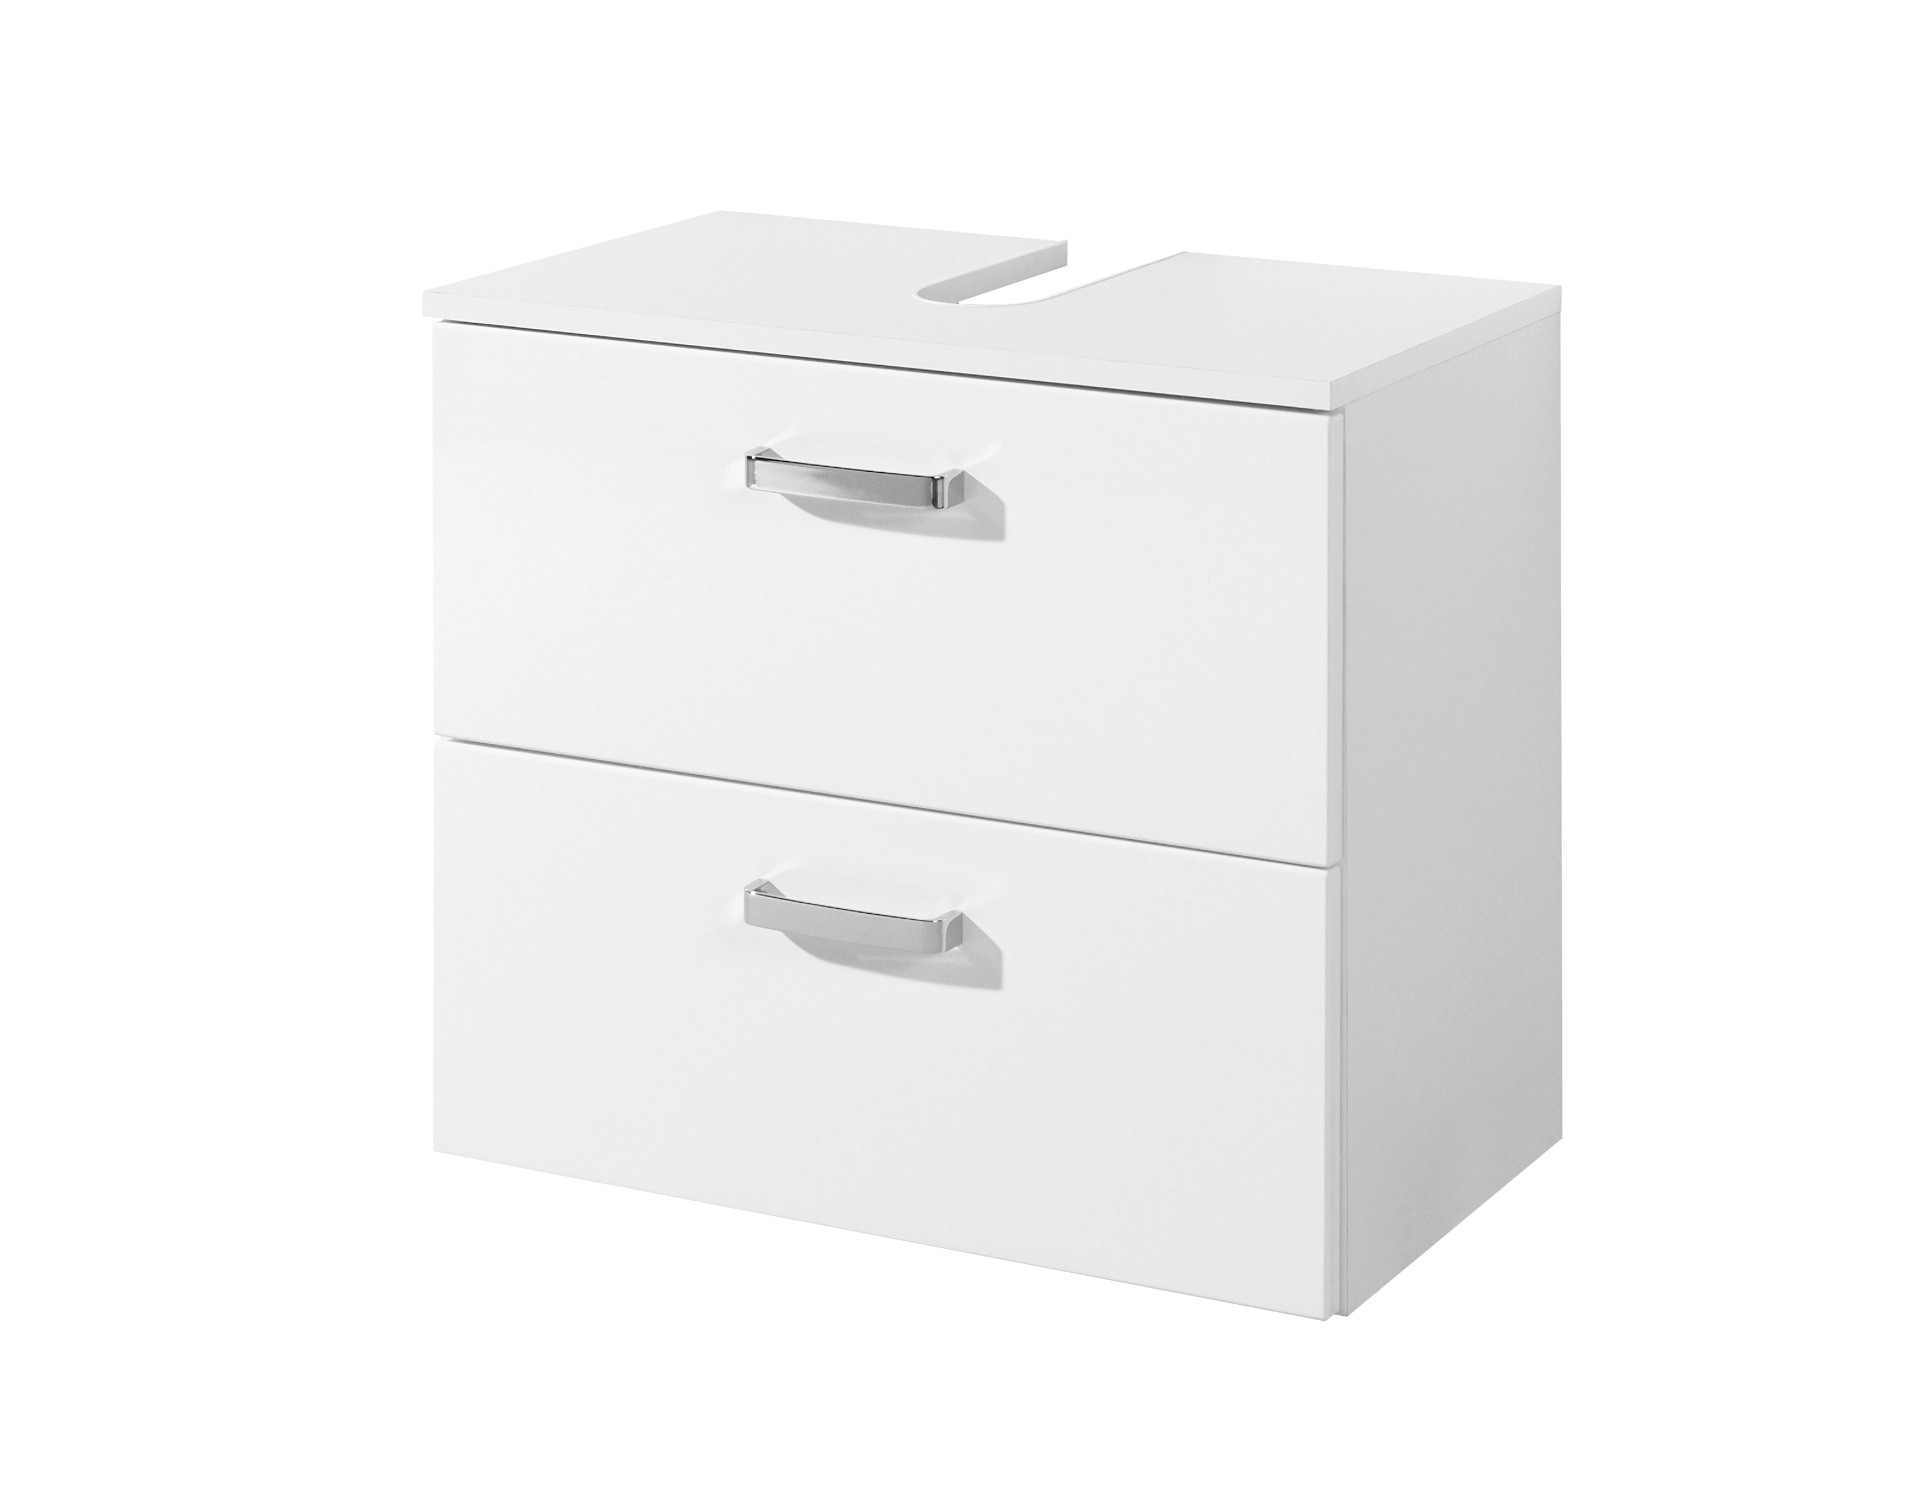 waschbeckenunterschrank ancona waschtisch unterschrank badschrank 60 cm weiss ebay. Black Bedroom Furniture Sets. Home Design Ideas